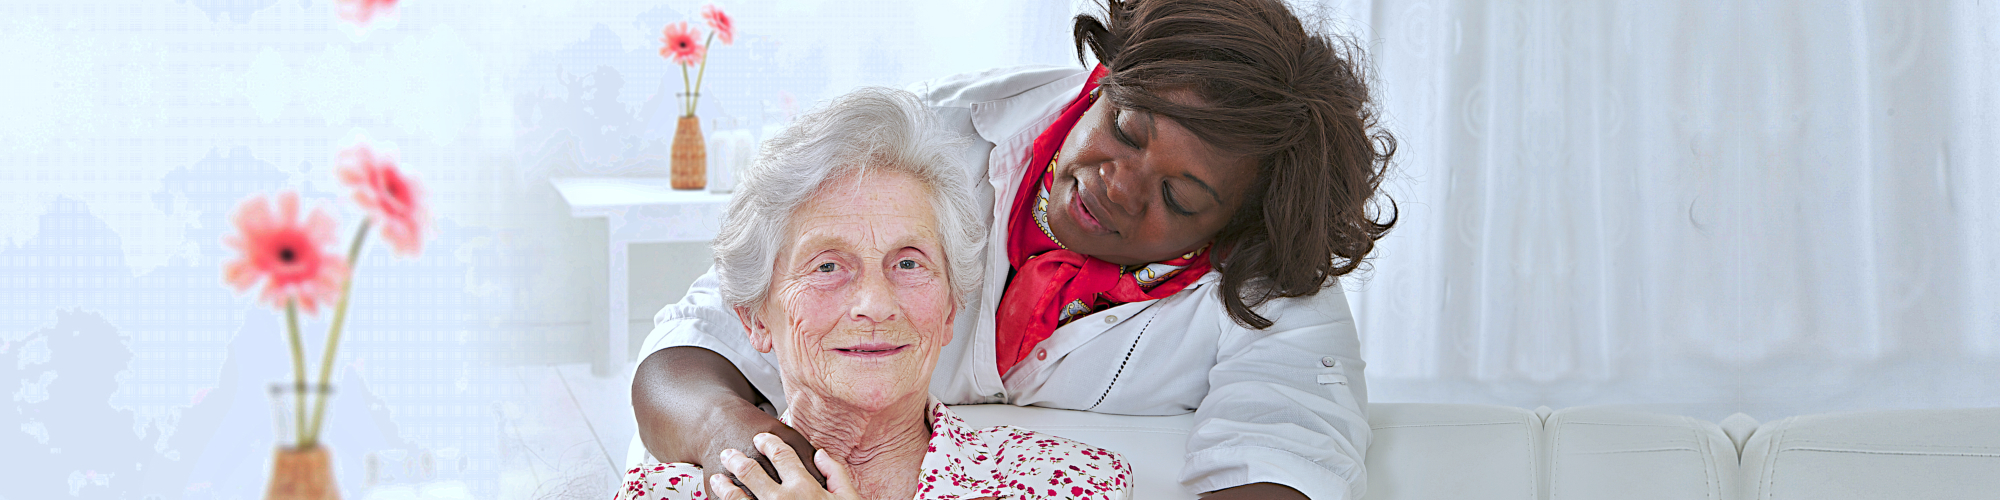 the nurse holding a hand of senior woman